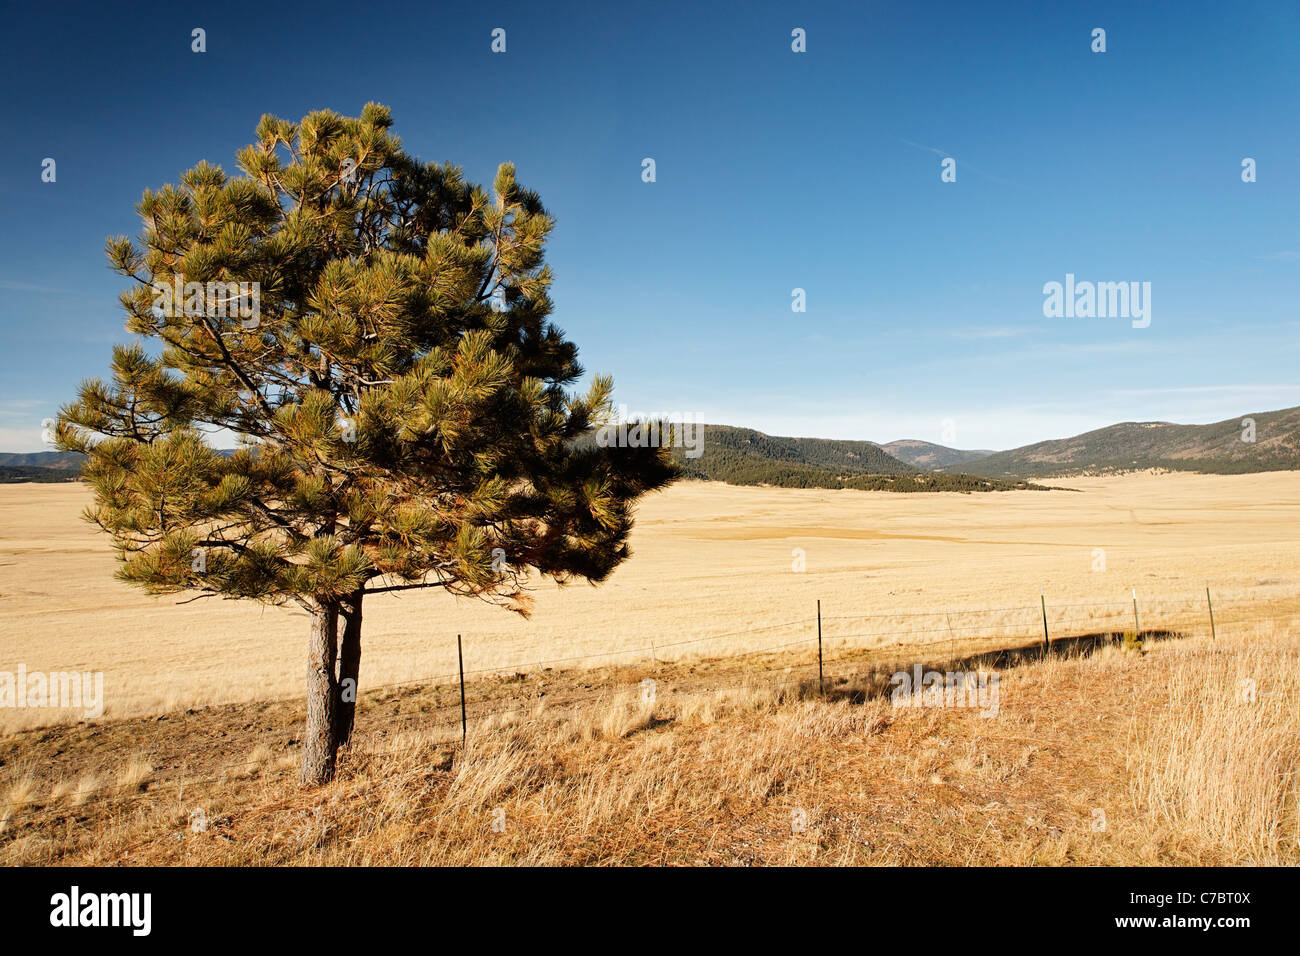 A lone tree stands at the edge of the Valle Grande caldera, Valles Caldera National Preserve, New Mexico, USA - Stock Image